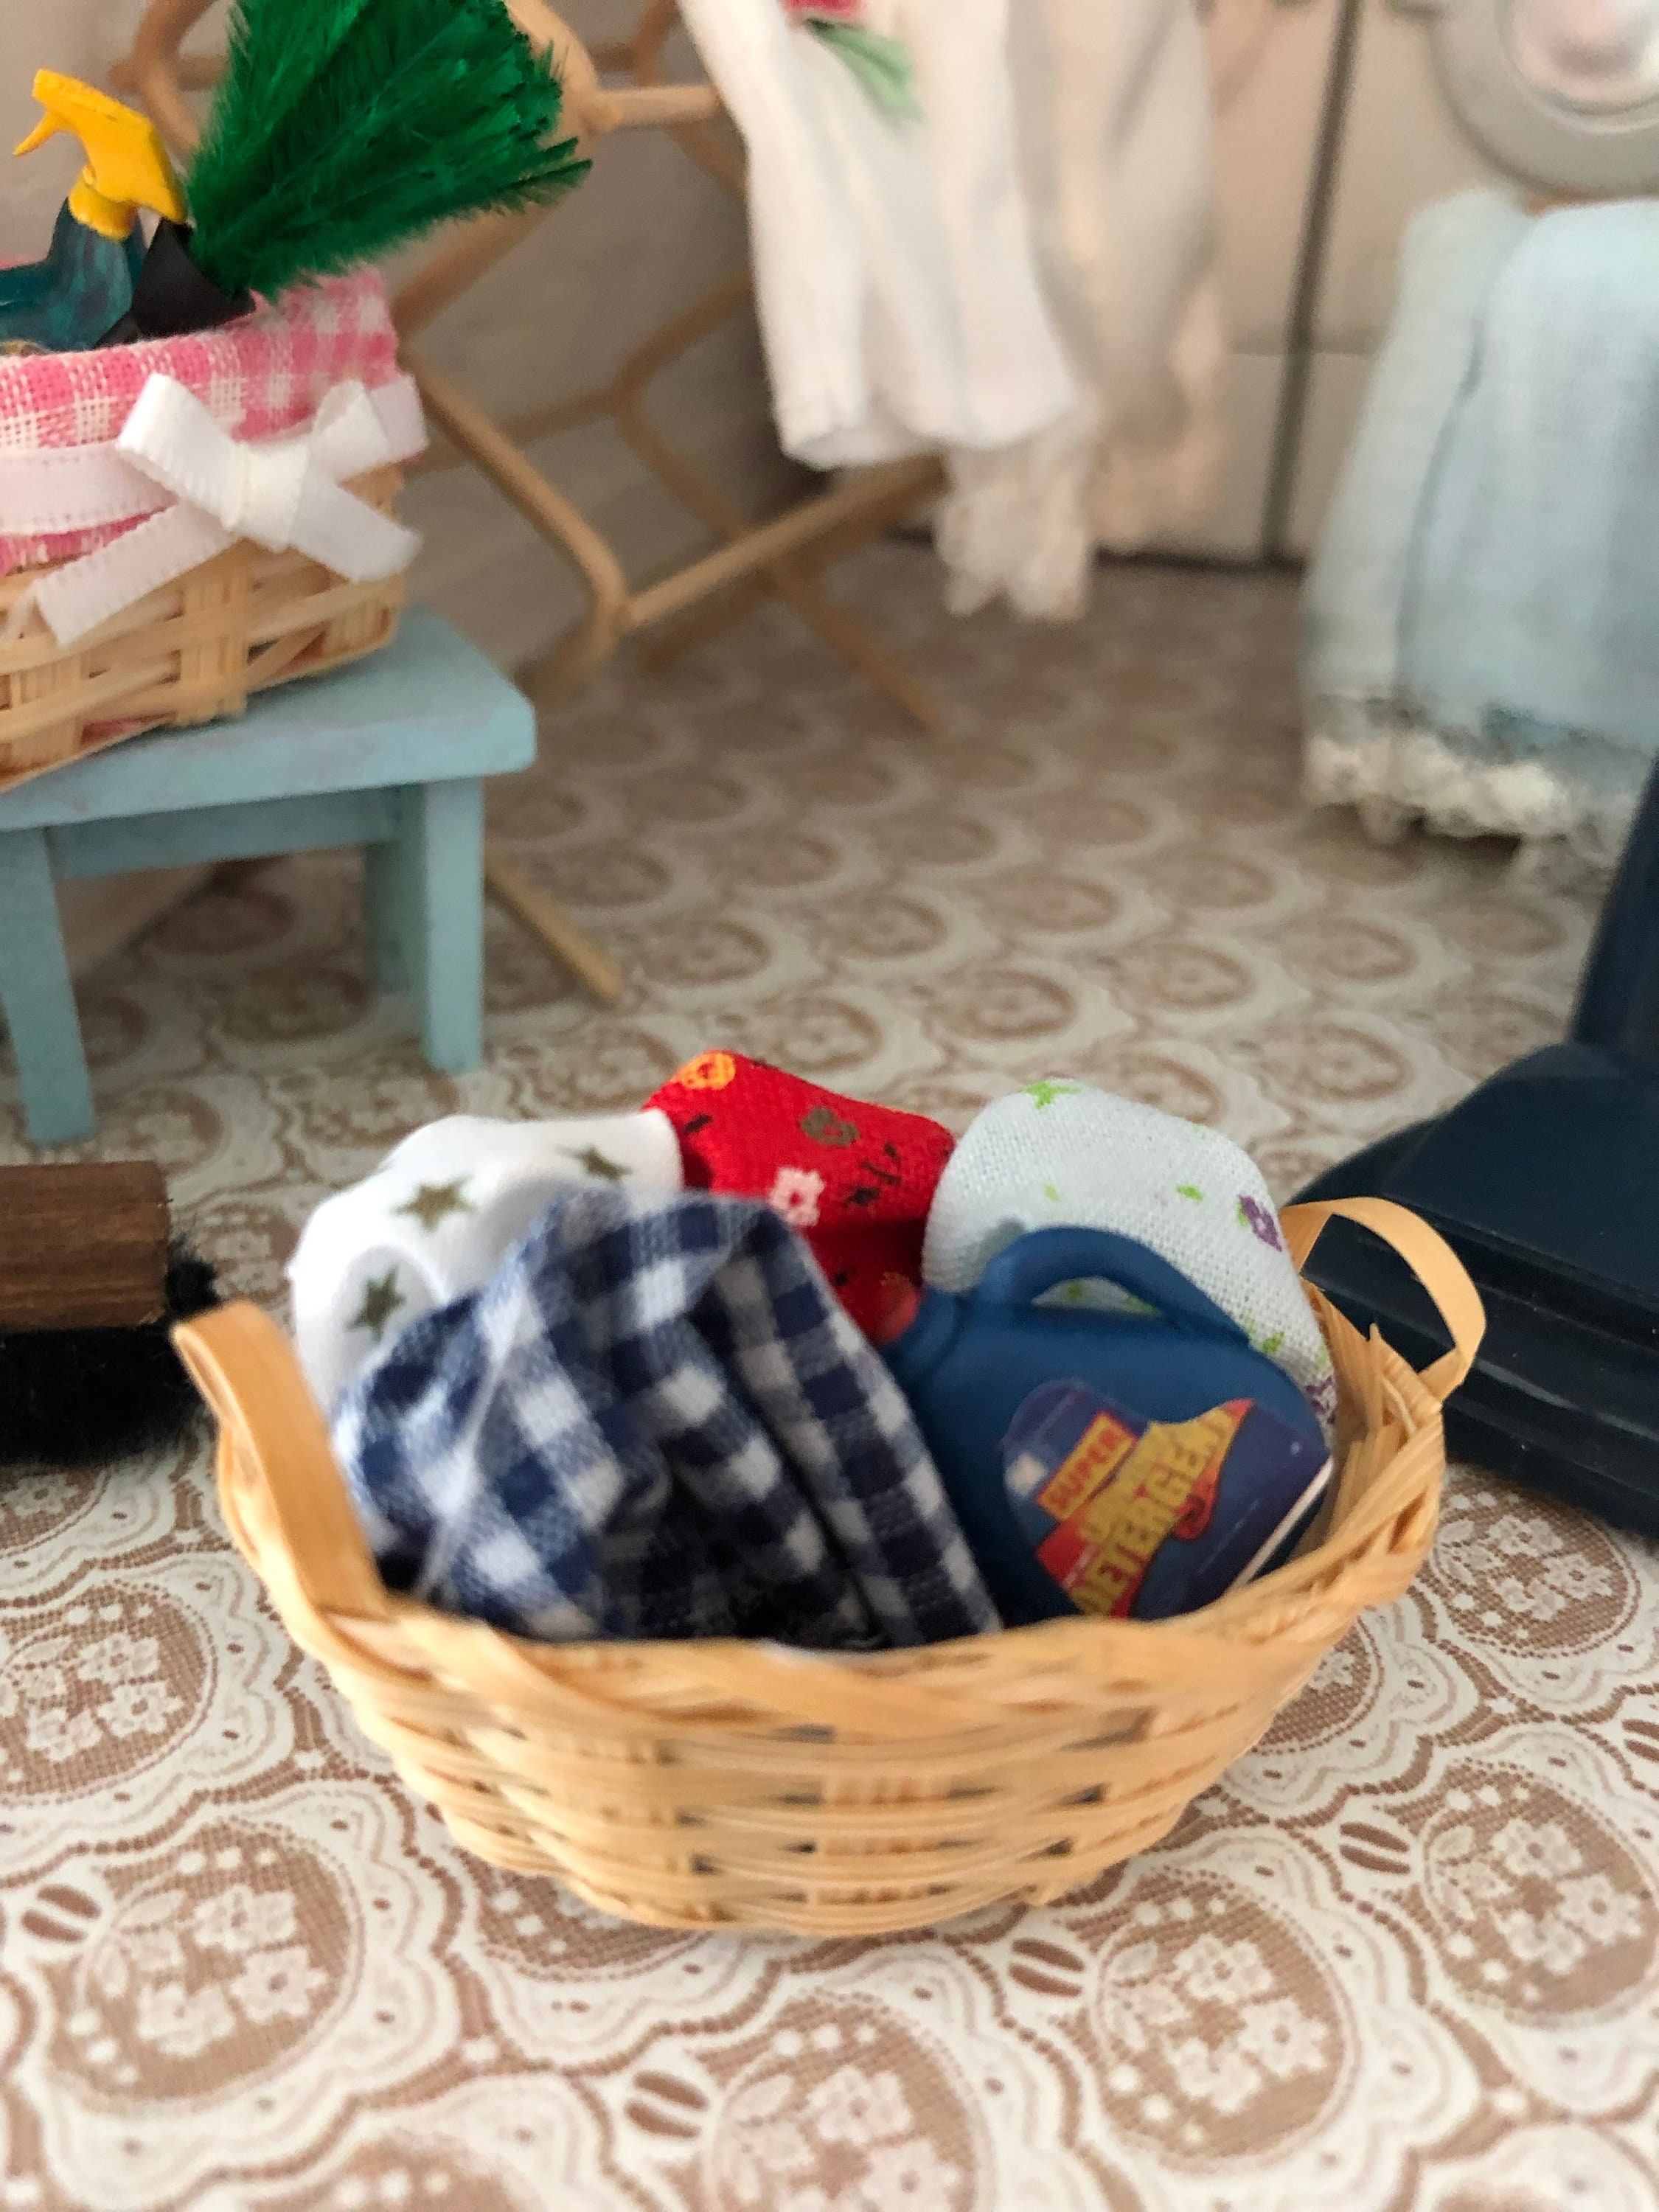 Doll house miniature laundry basket in 1:12 scale